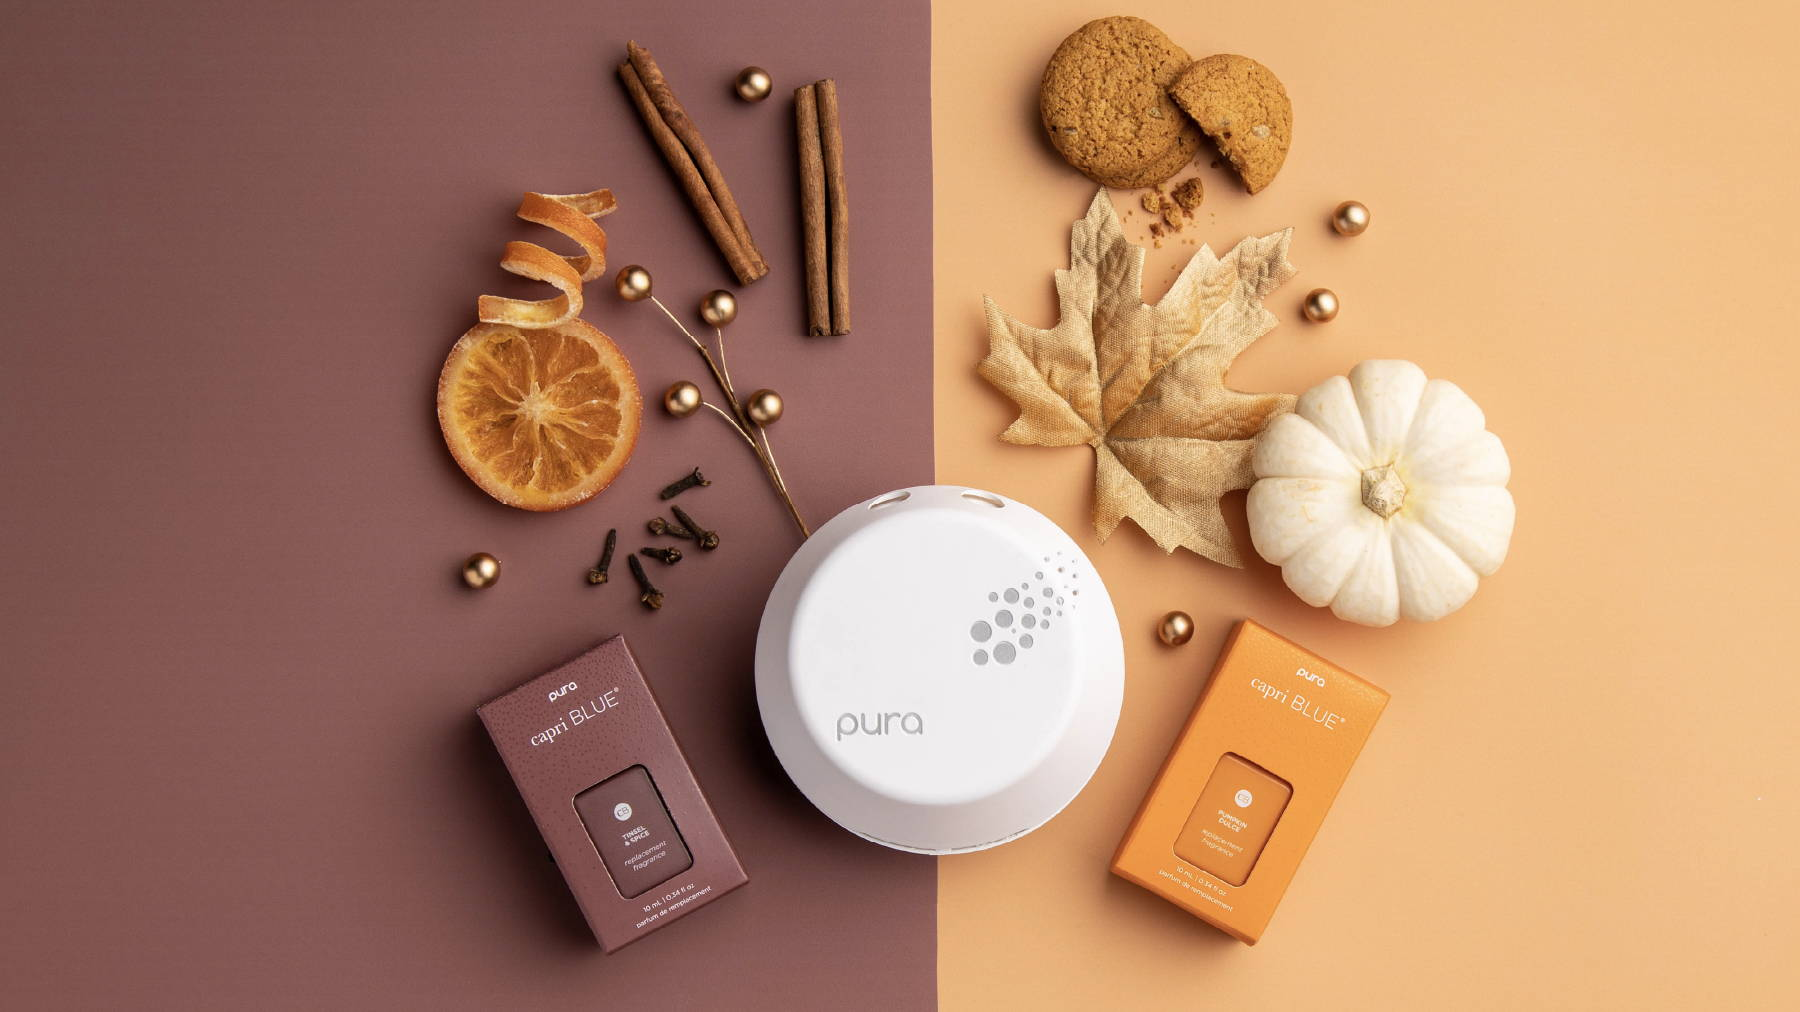 Tinsel & Spice, Pumpkin Dulce, and Device